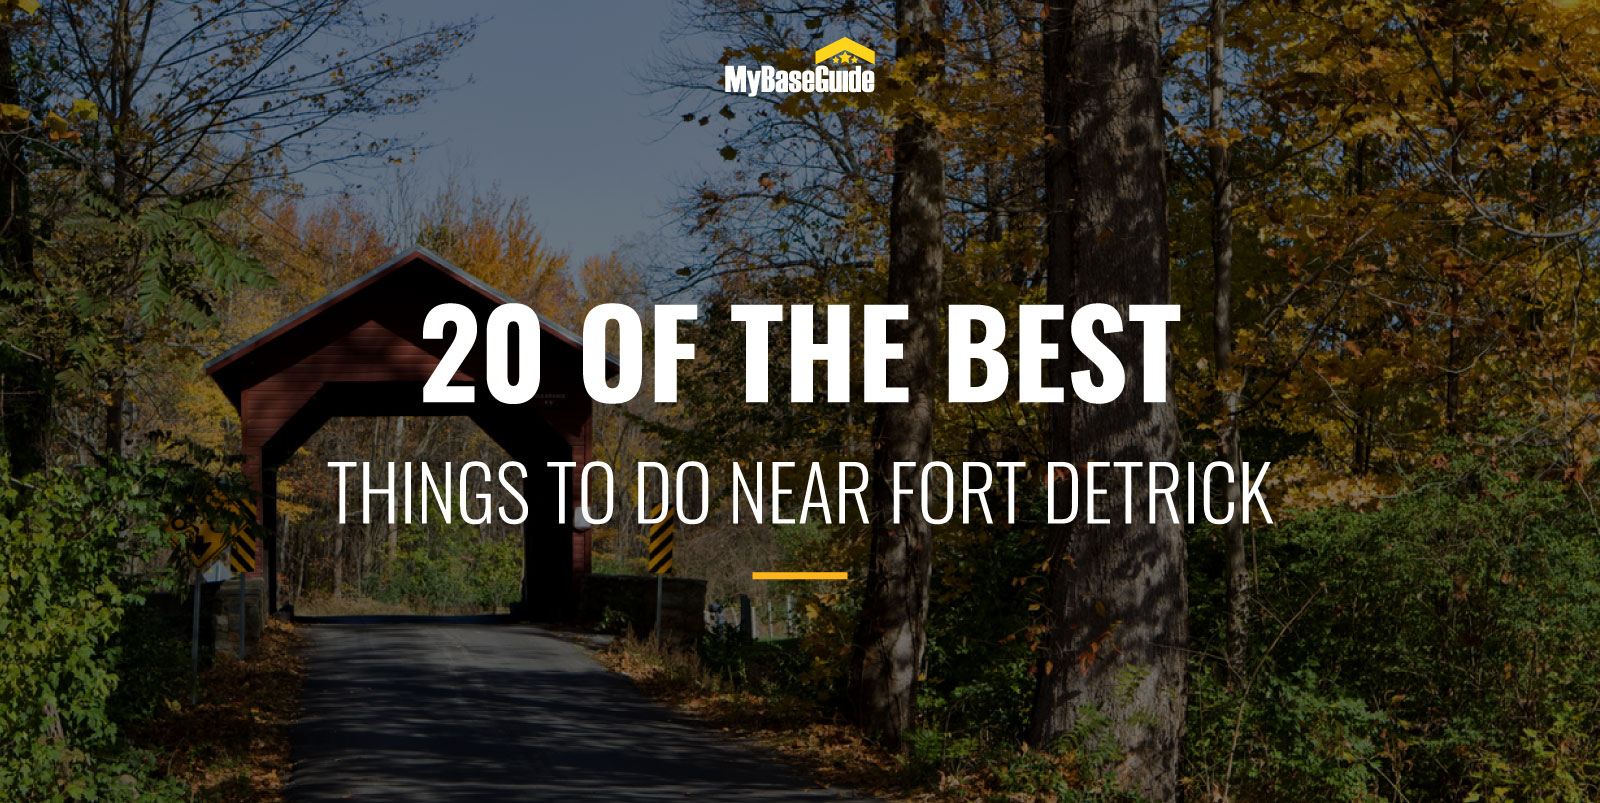 20 Of the Best Things to Do Near Fort Detrick, MD